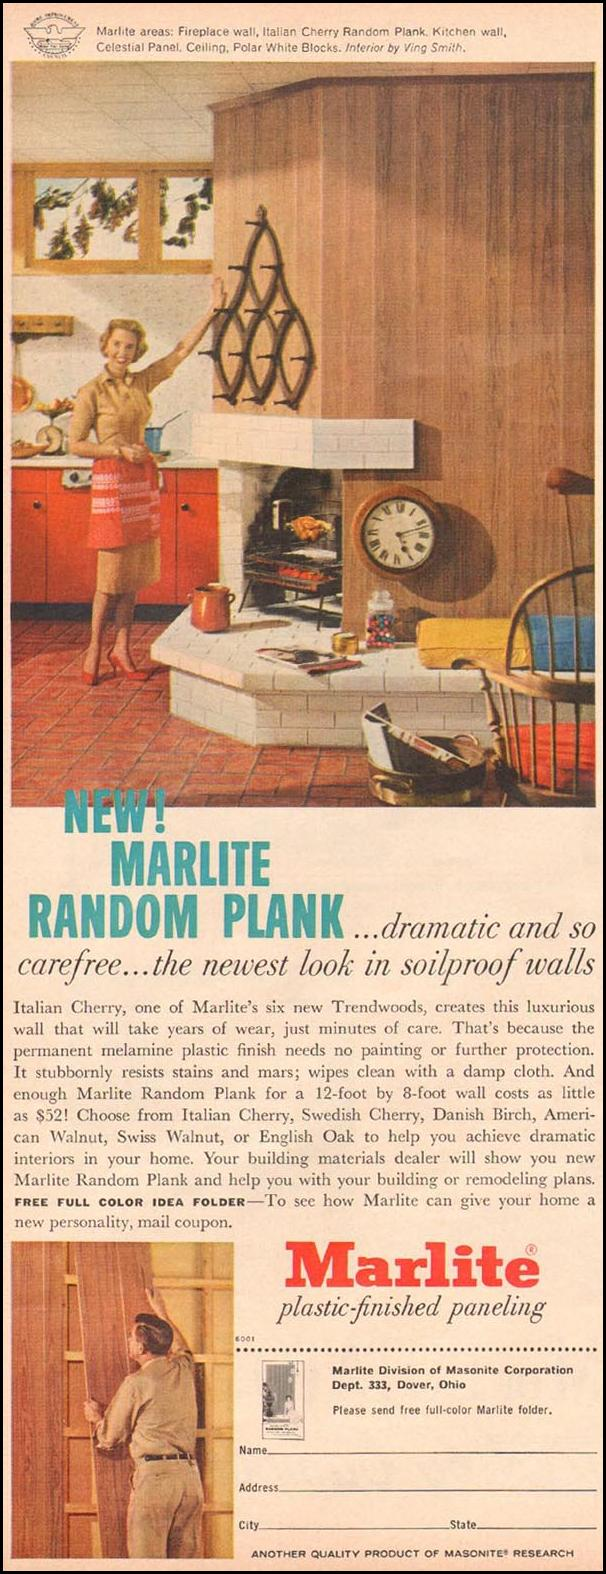 MARLITE PLASTIC-FINISHED PANELING BETTER HOMES AND GARDENS 03/01/1960 p. 120